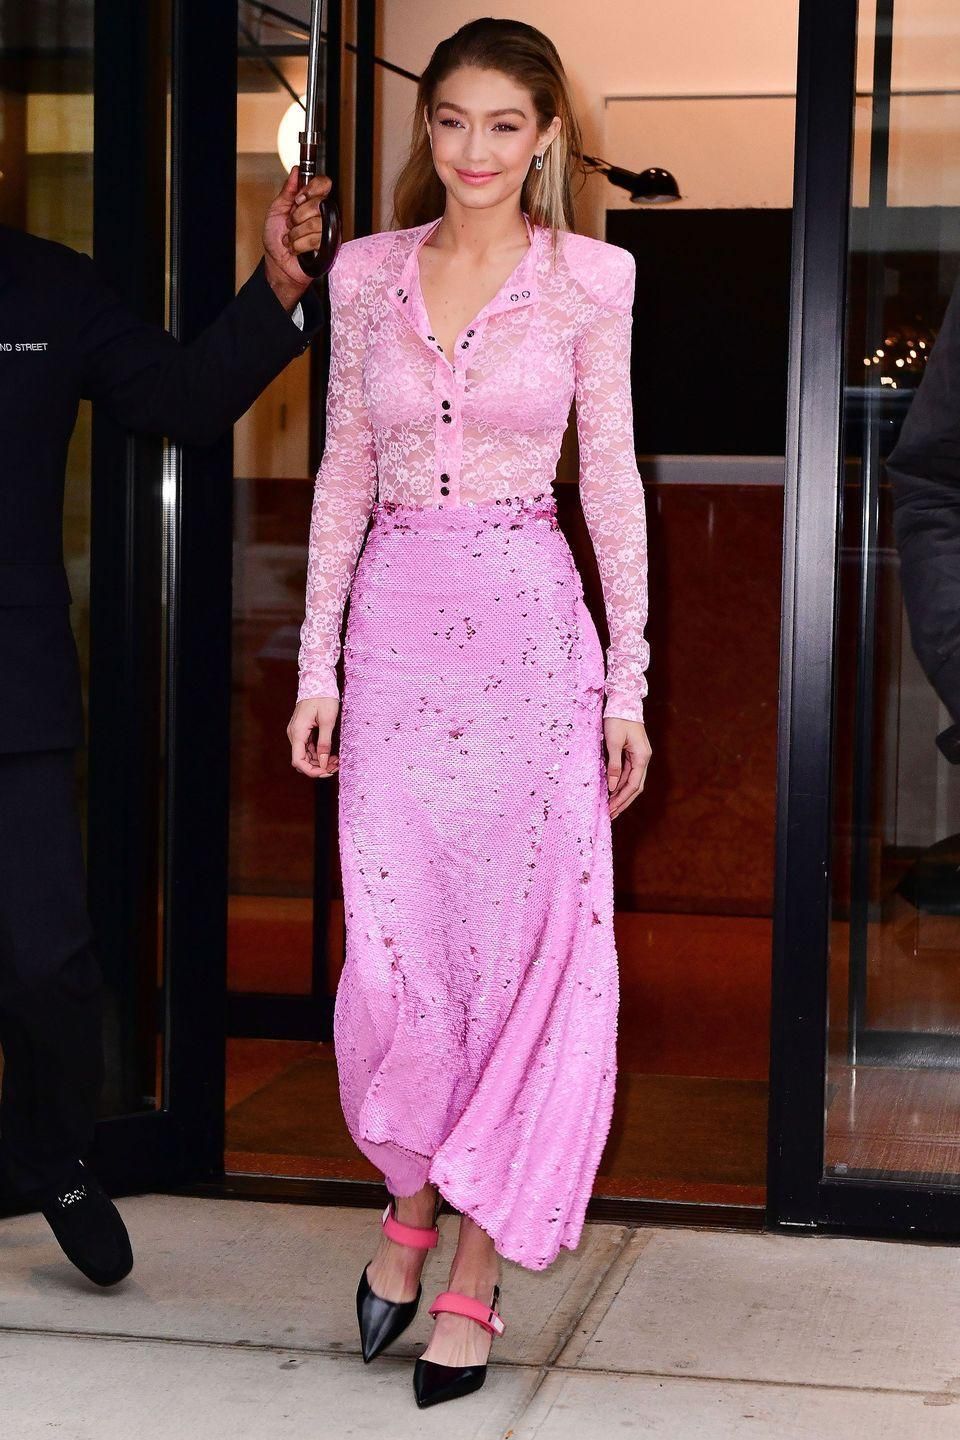 <p>In a Nina Ricci sheer pink lace bodysuit and floral maxi skirt, Prada slingback heels, and Messika white gold earrings while out in New York.</p>